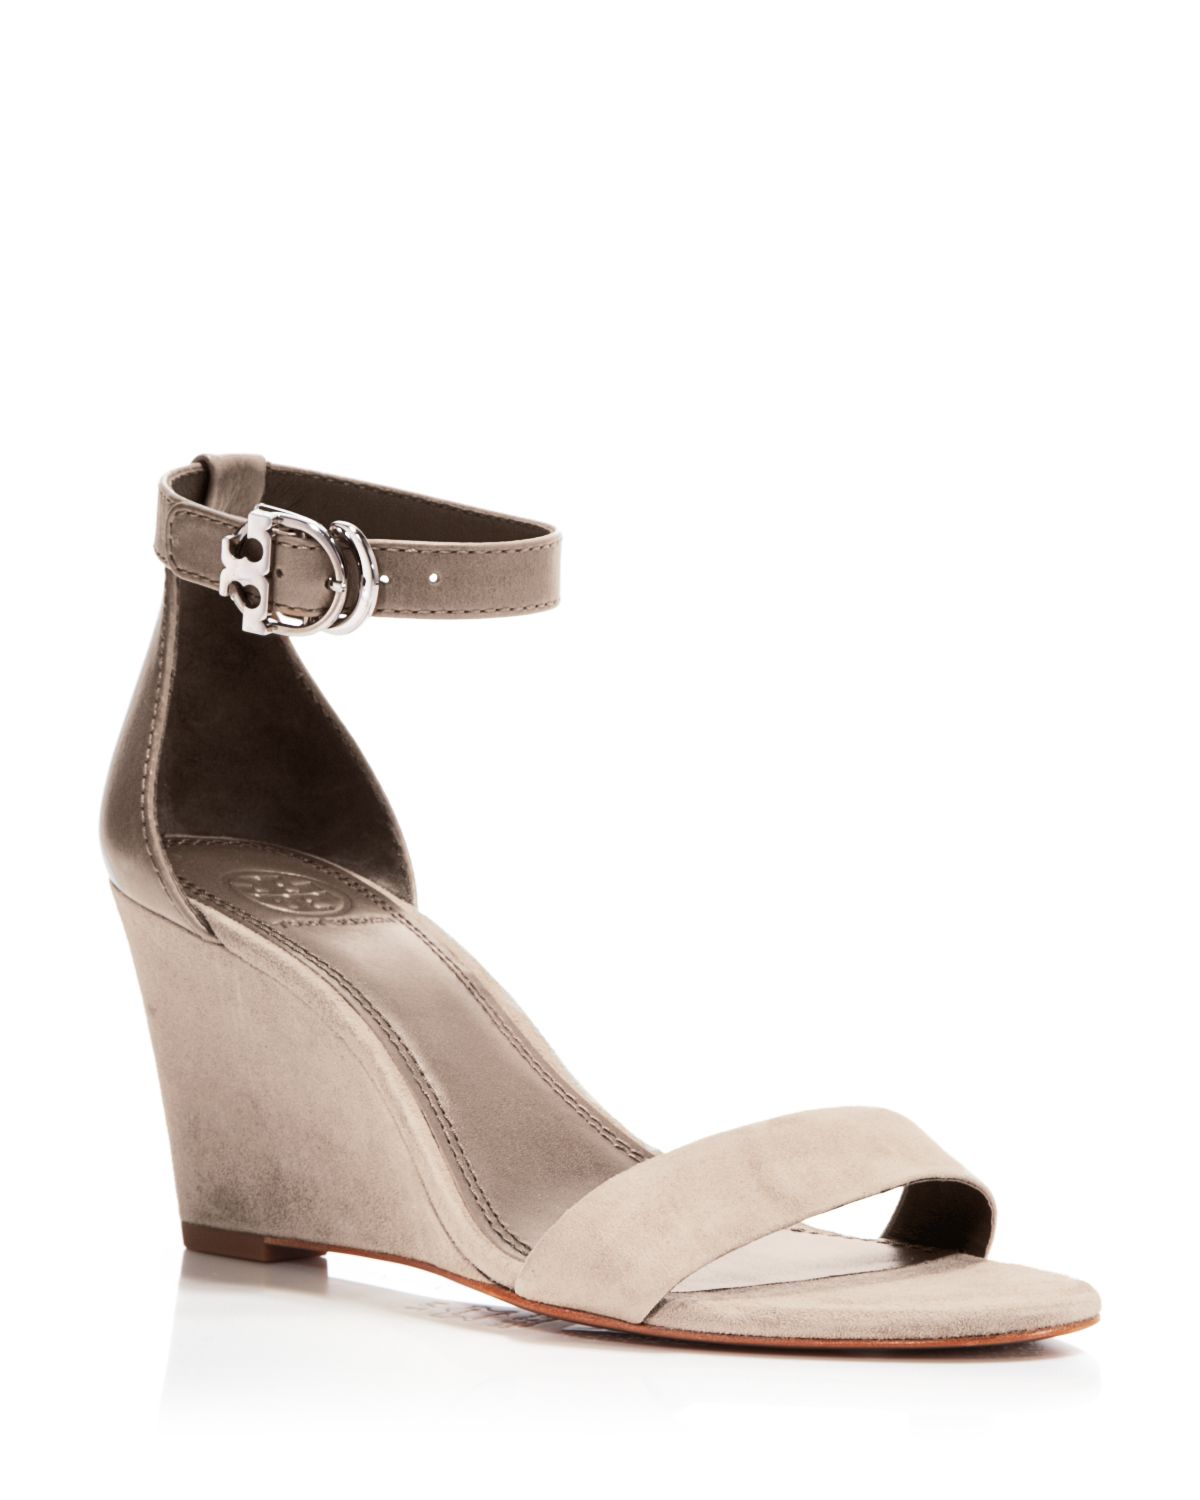 9aa17b1cb4d Lyst - Tory Burch Ankle Strap Wedge Sandals - Grant Suede in Natural